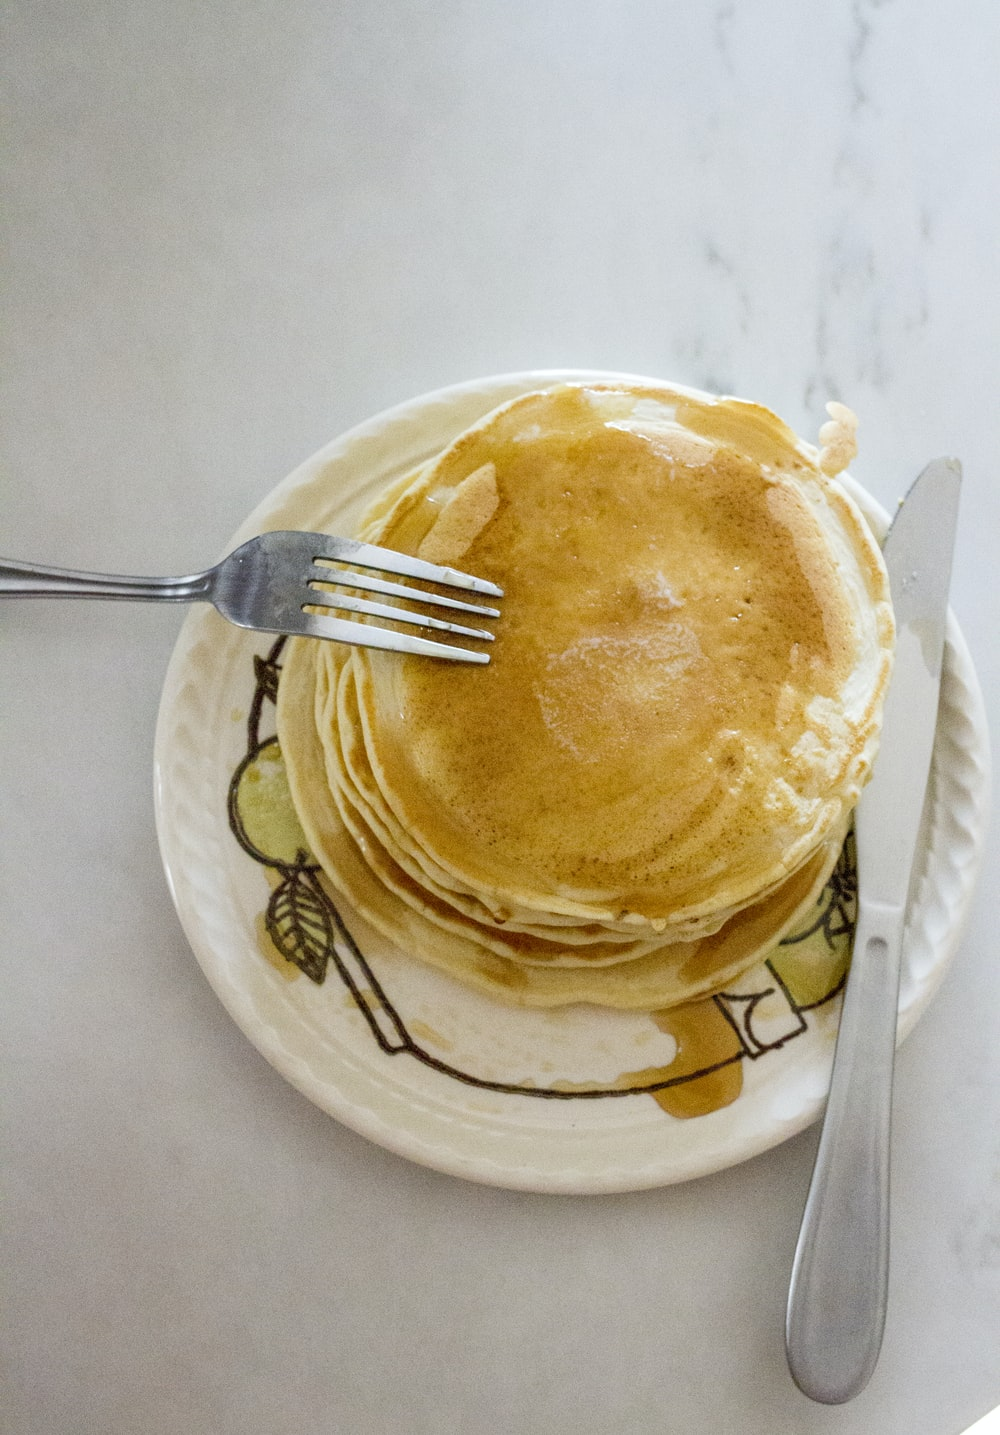 pancake in the plate